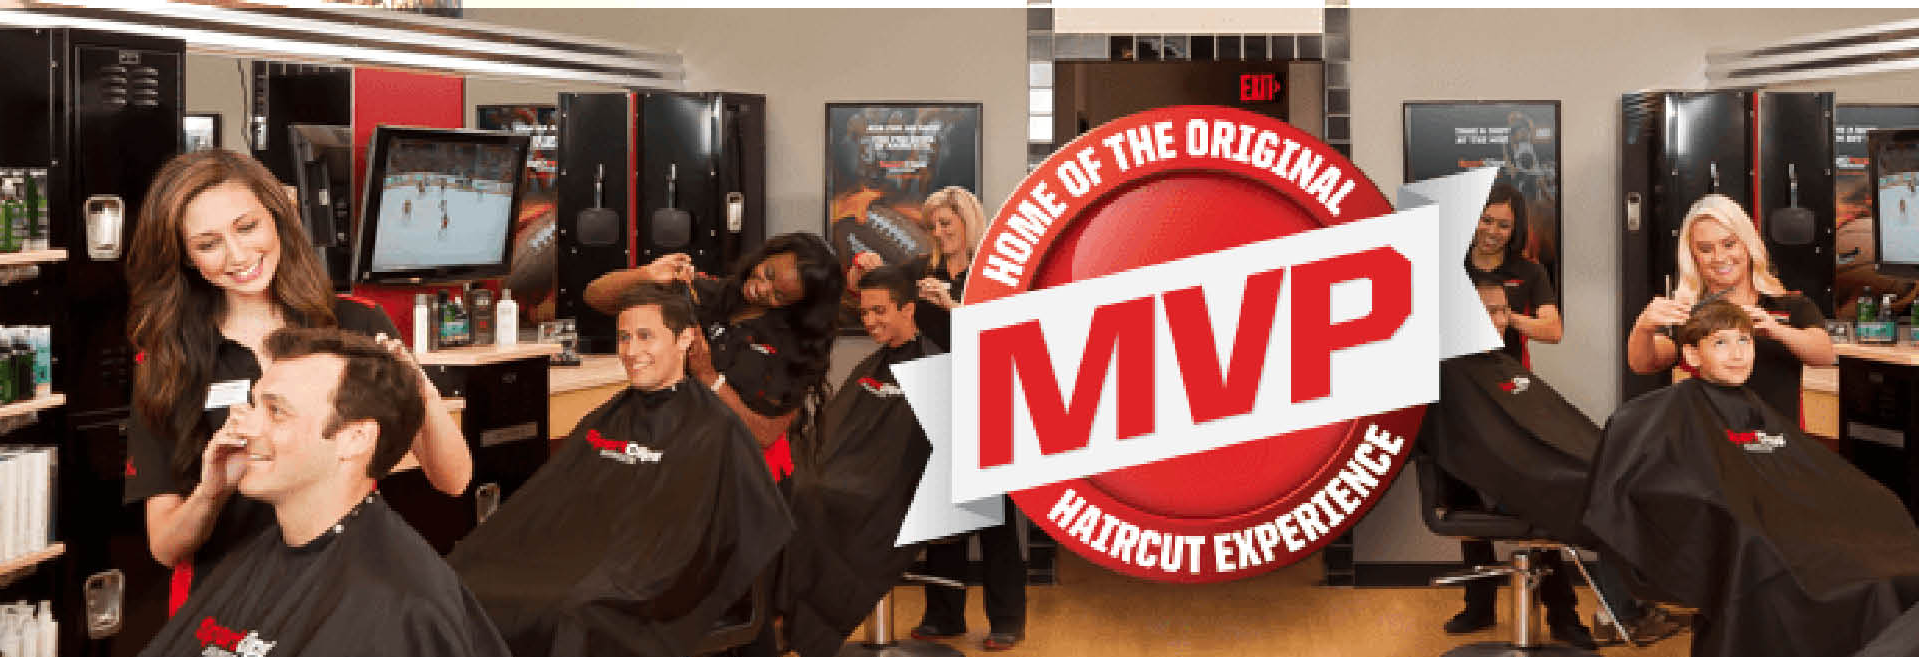 Sport clips Mens Haircuts in Glendale, WI on Milwaukee's North Shore banner.